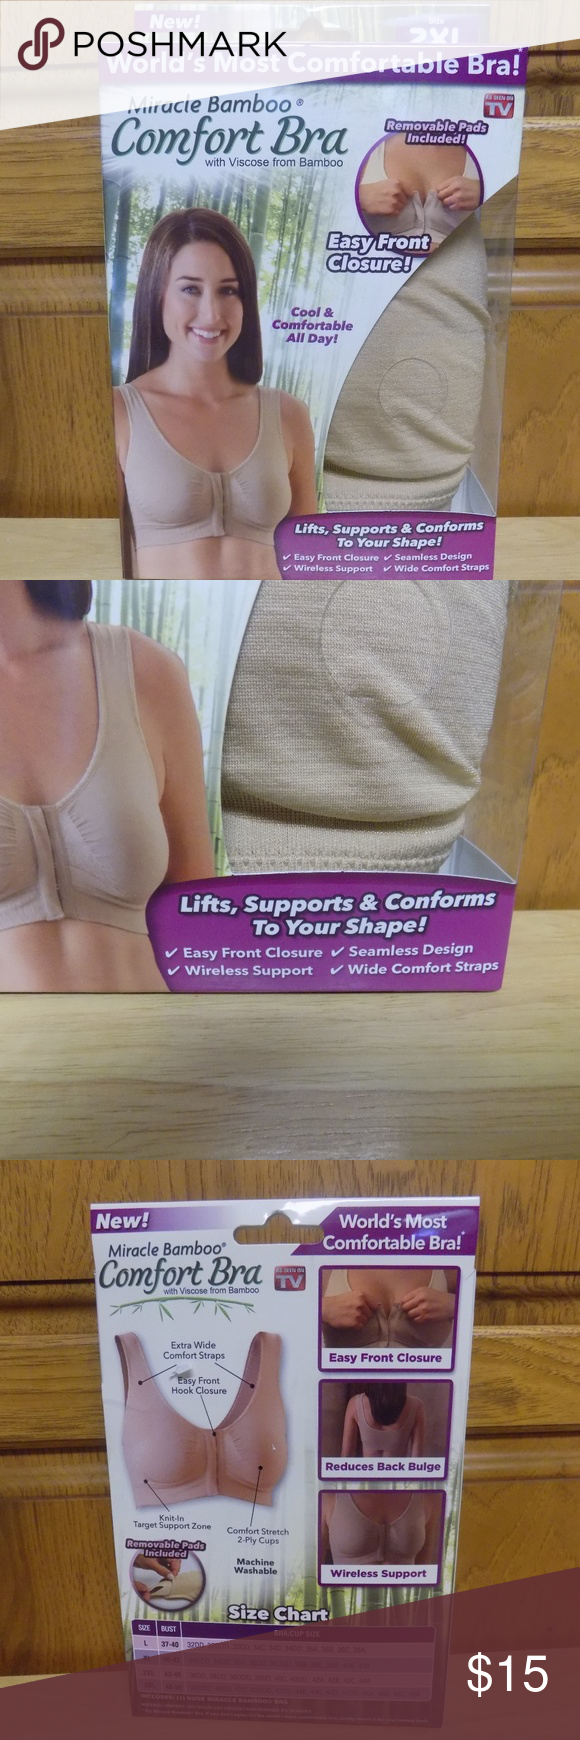 1ee7836106533 New Miracle Bamboo Comfort Bra Size 2XL New Miracle Bamboo Comfort Bra -  With Viscose from bamboo - Removable pads included - East front closure -  Lifts